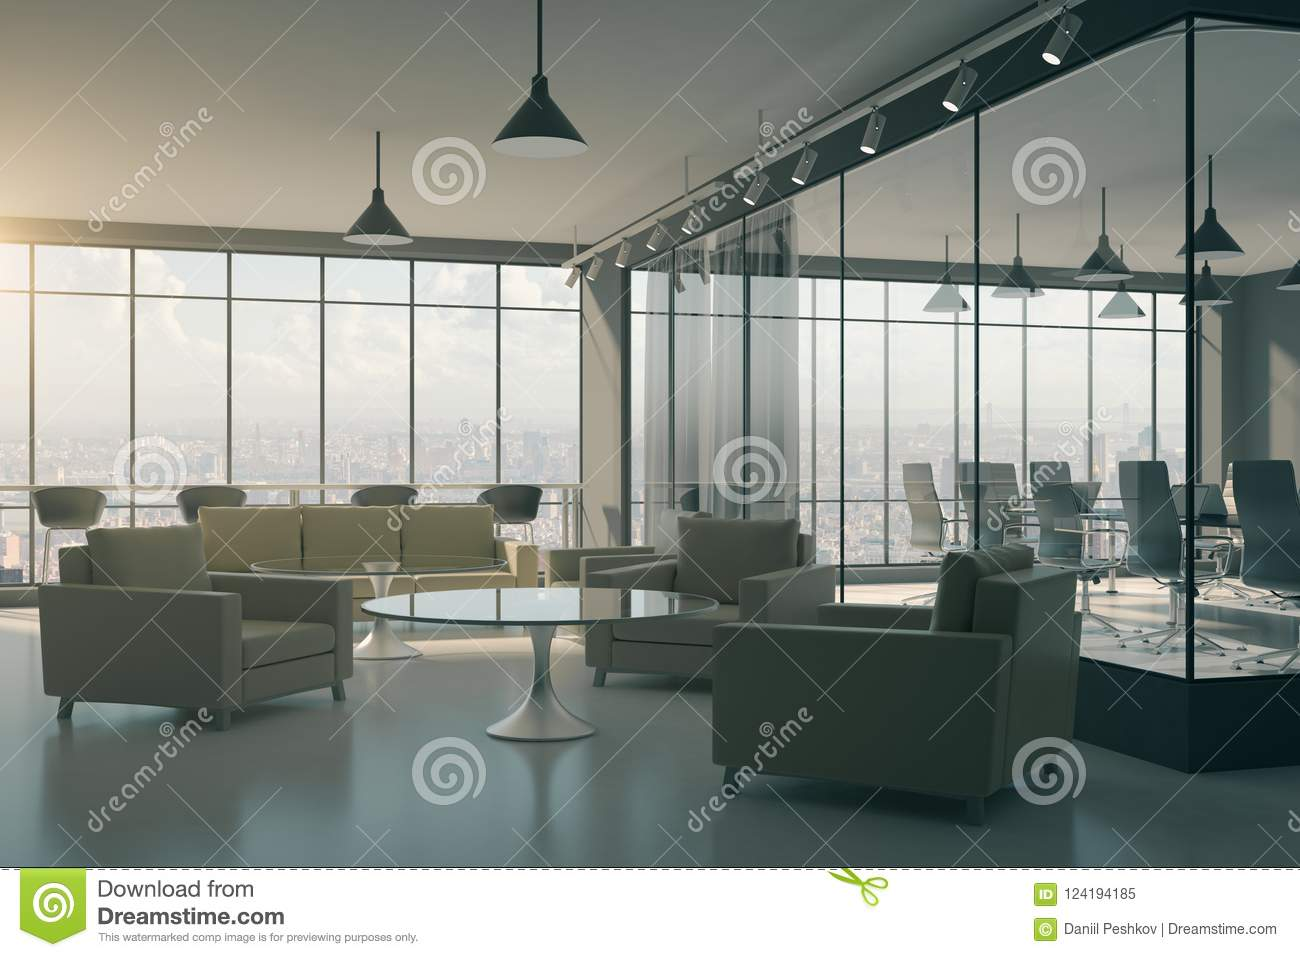 Download Modern Office Lobby Interior Stock Illustration   Illustration Of  Curtains, Corporate: 124194185